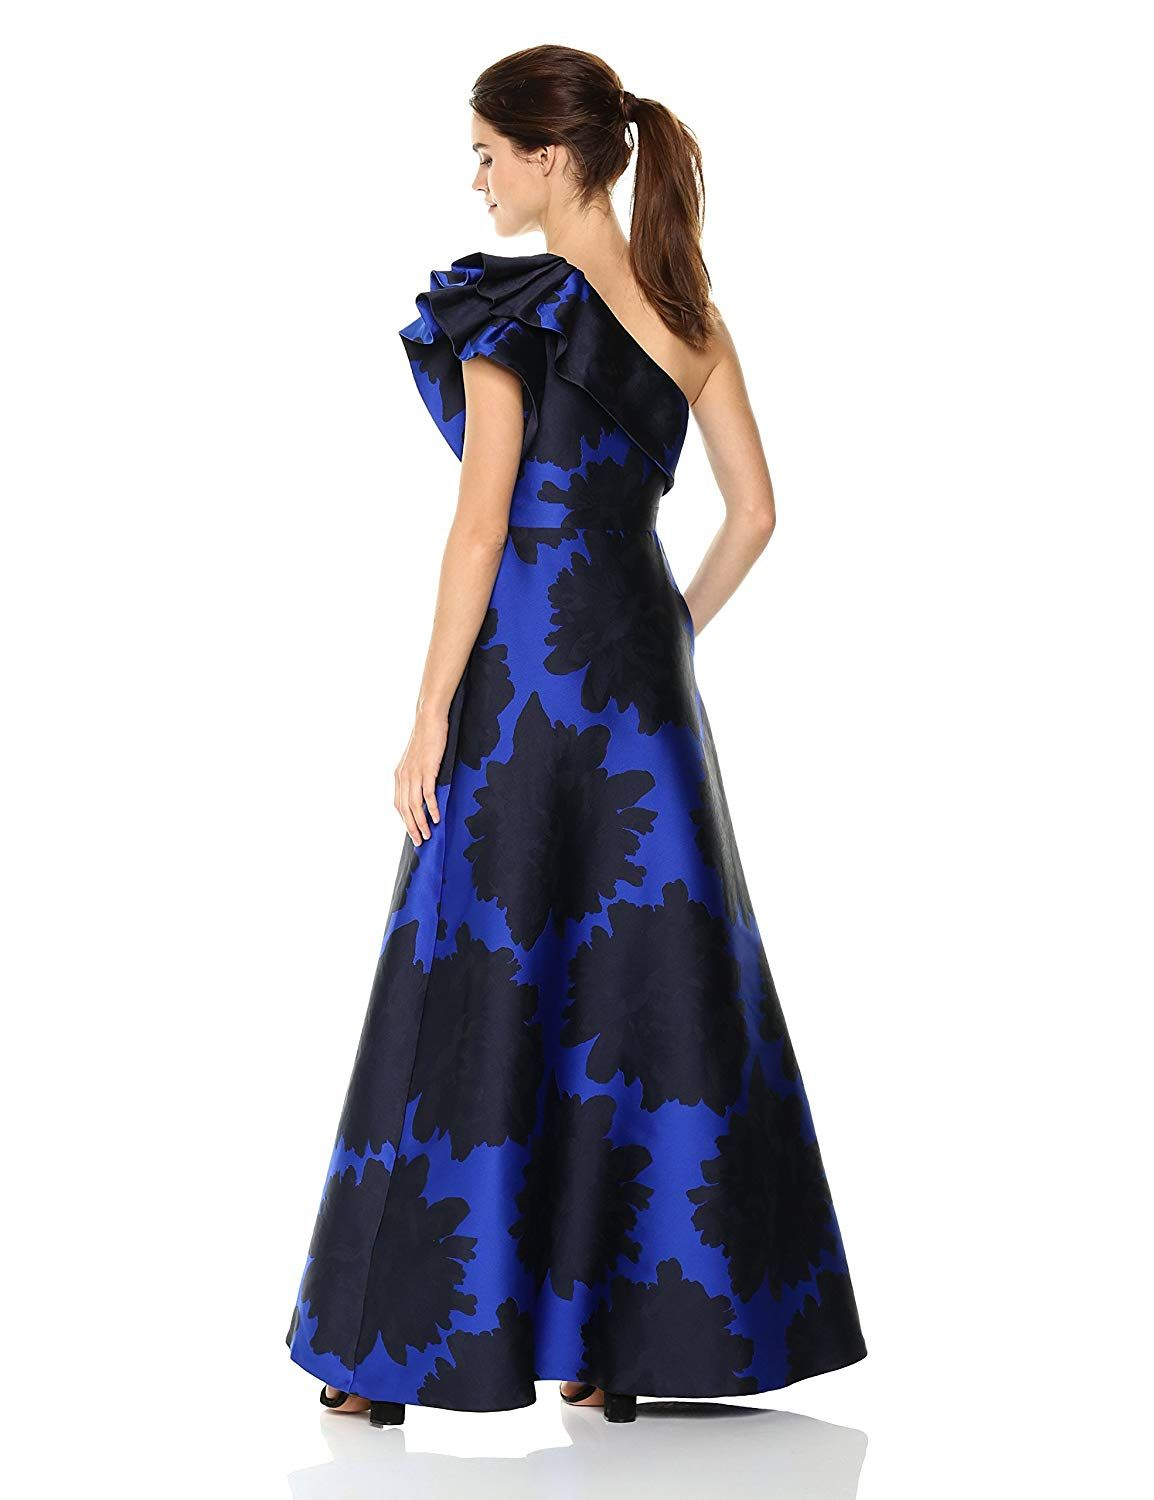 0649a8f5430 Adrianna Papell Women s Floral Jacquard Long Dress 5.0 out of 5 stars 2  customer reviews Price   259.00